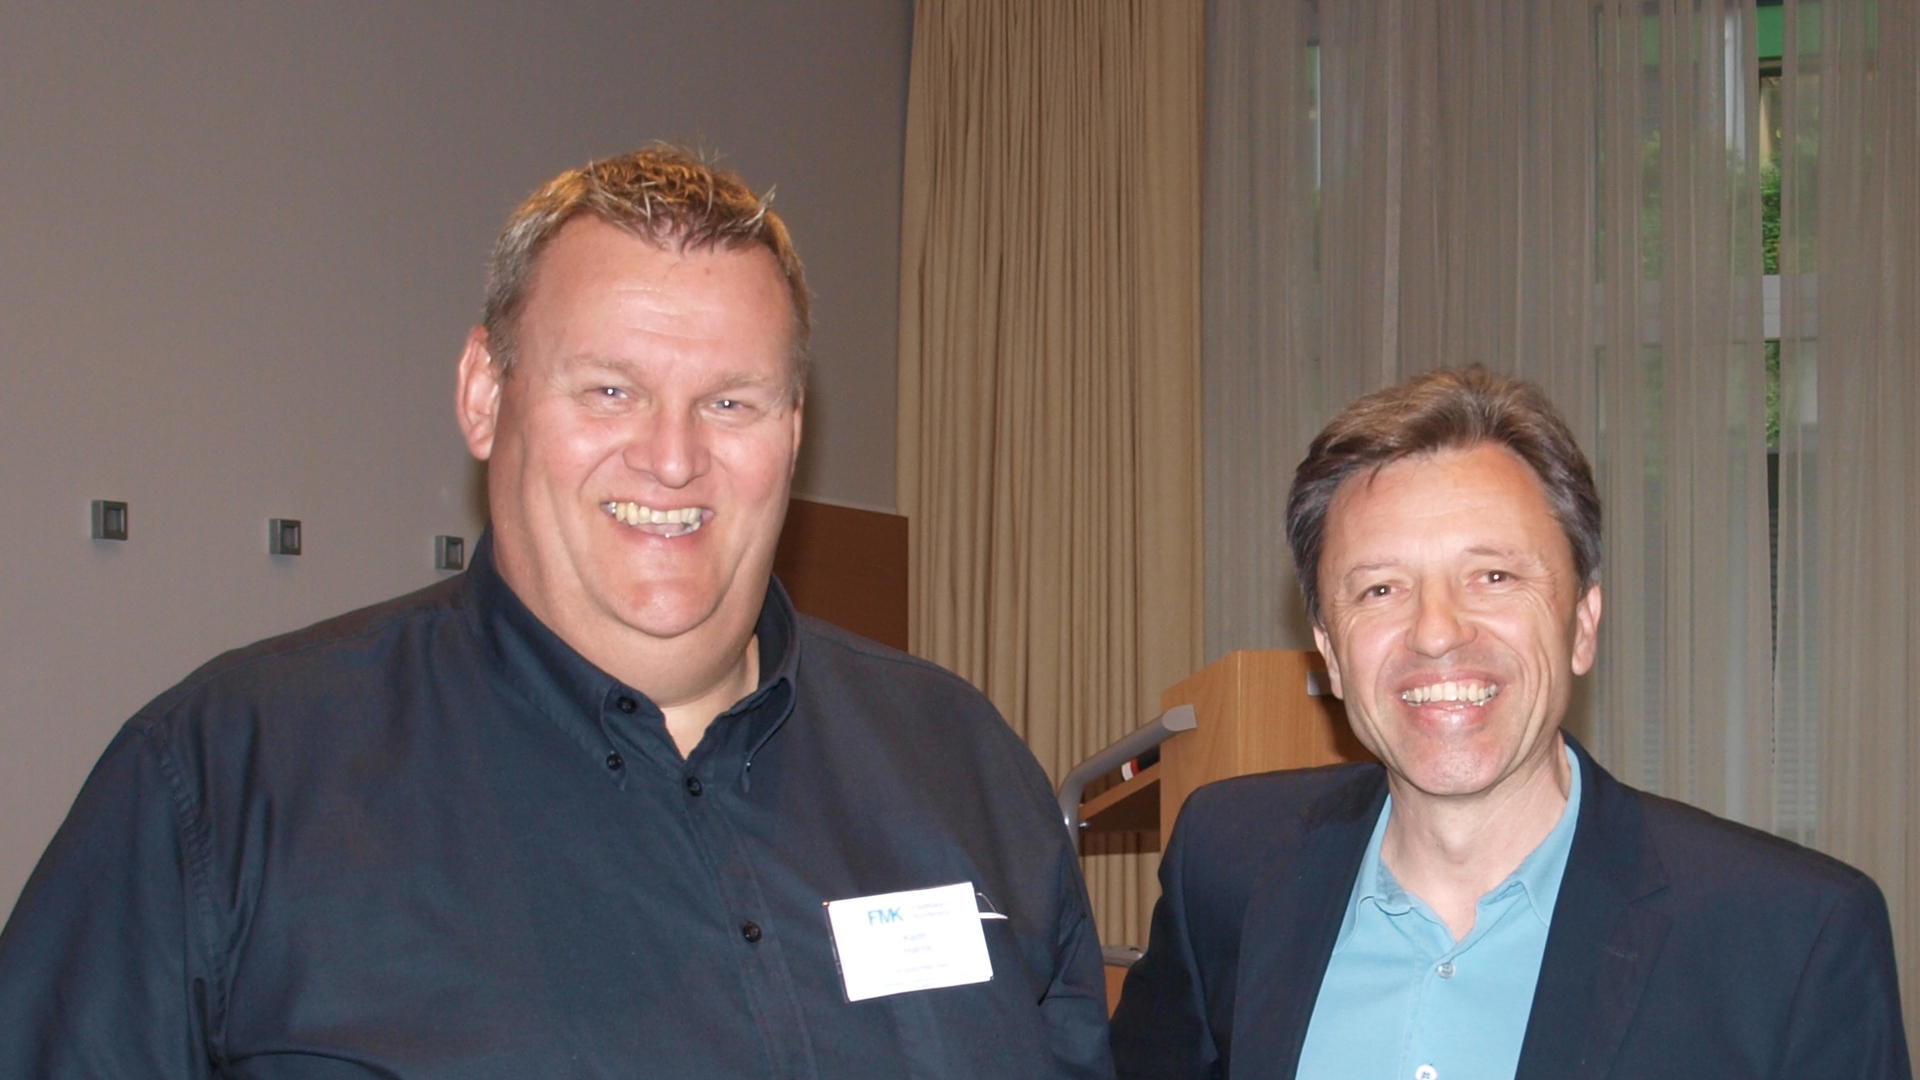 eibel.businesssoftware.at, Keith.Harris, Erwin.Eibel, sozialserver.at